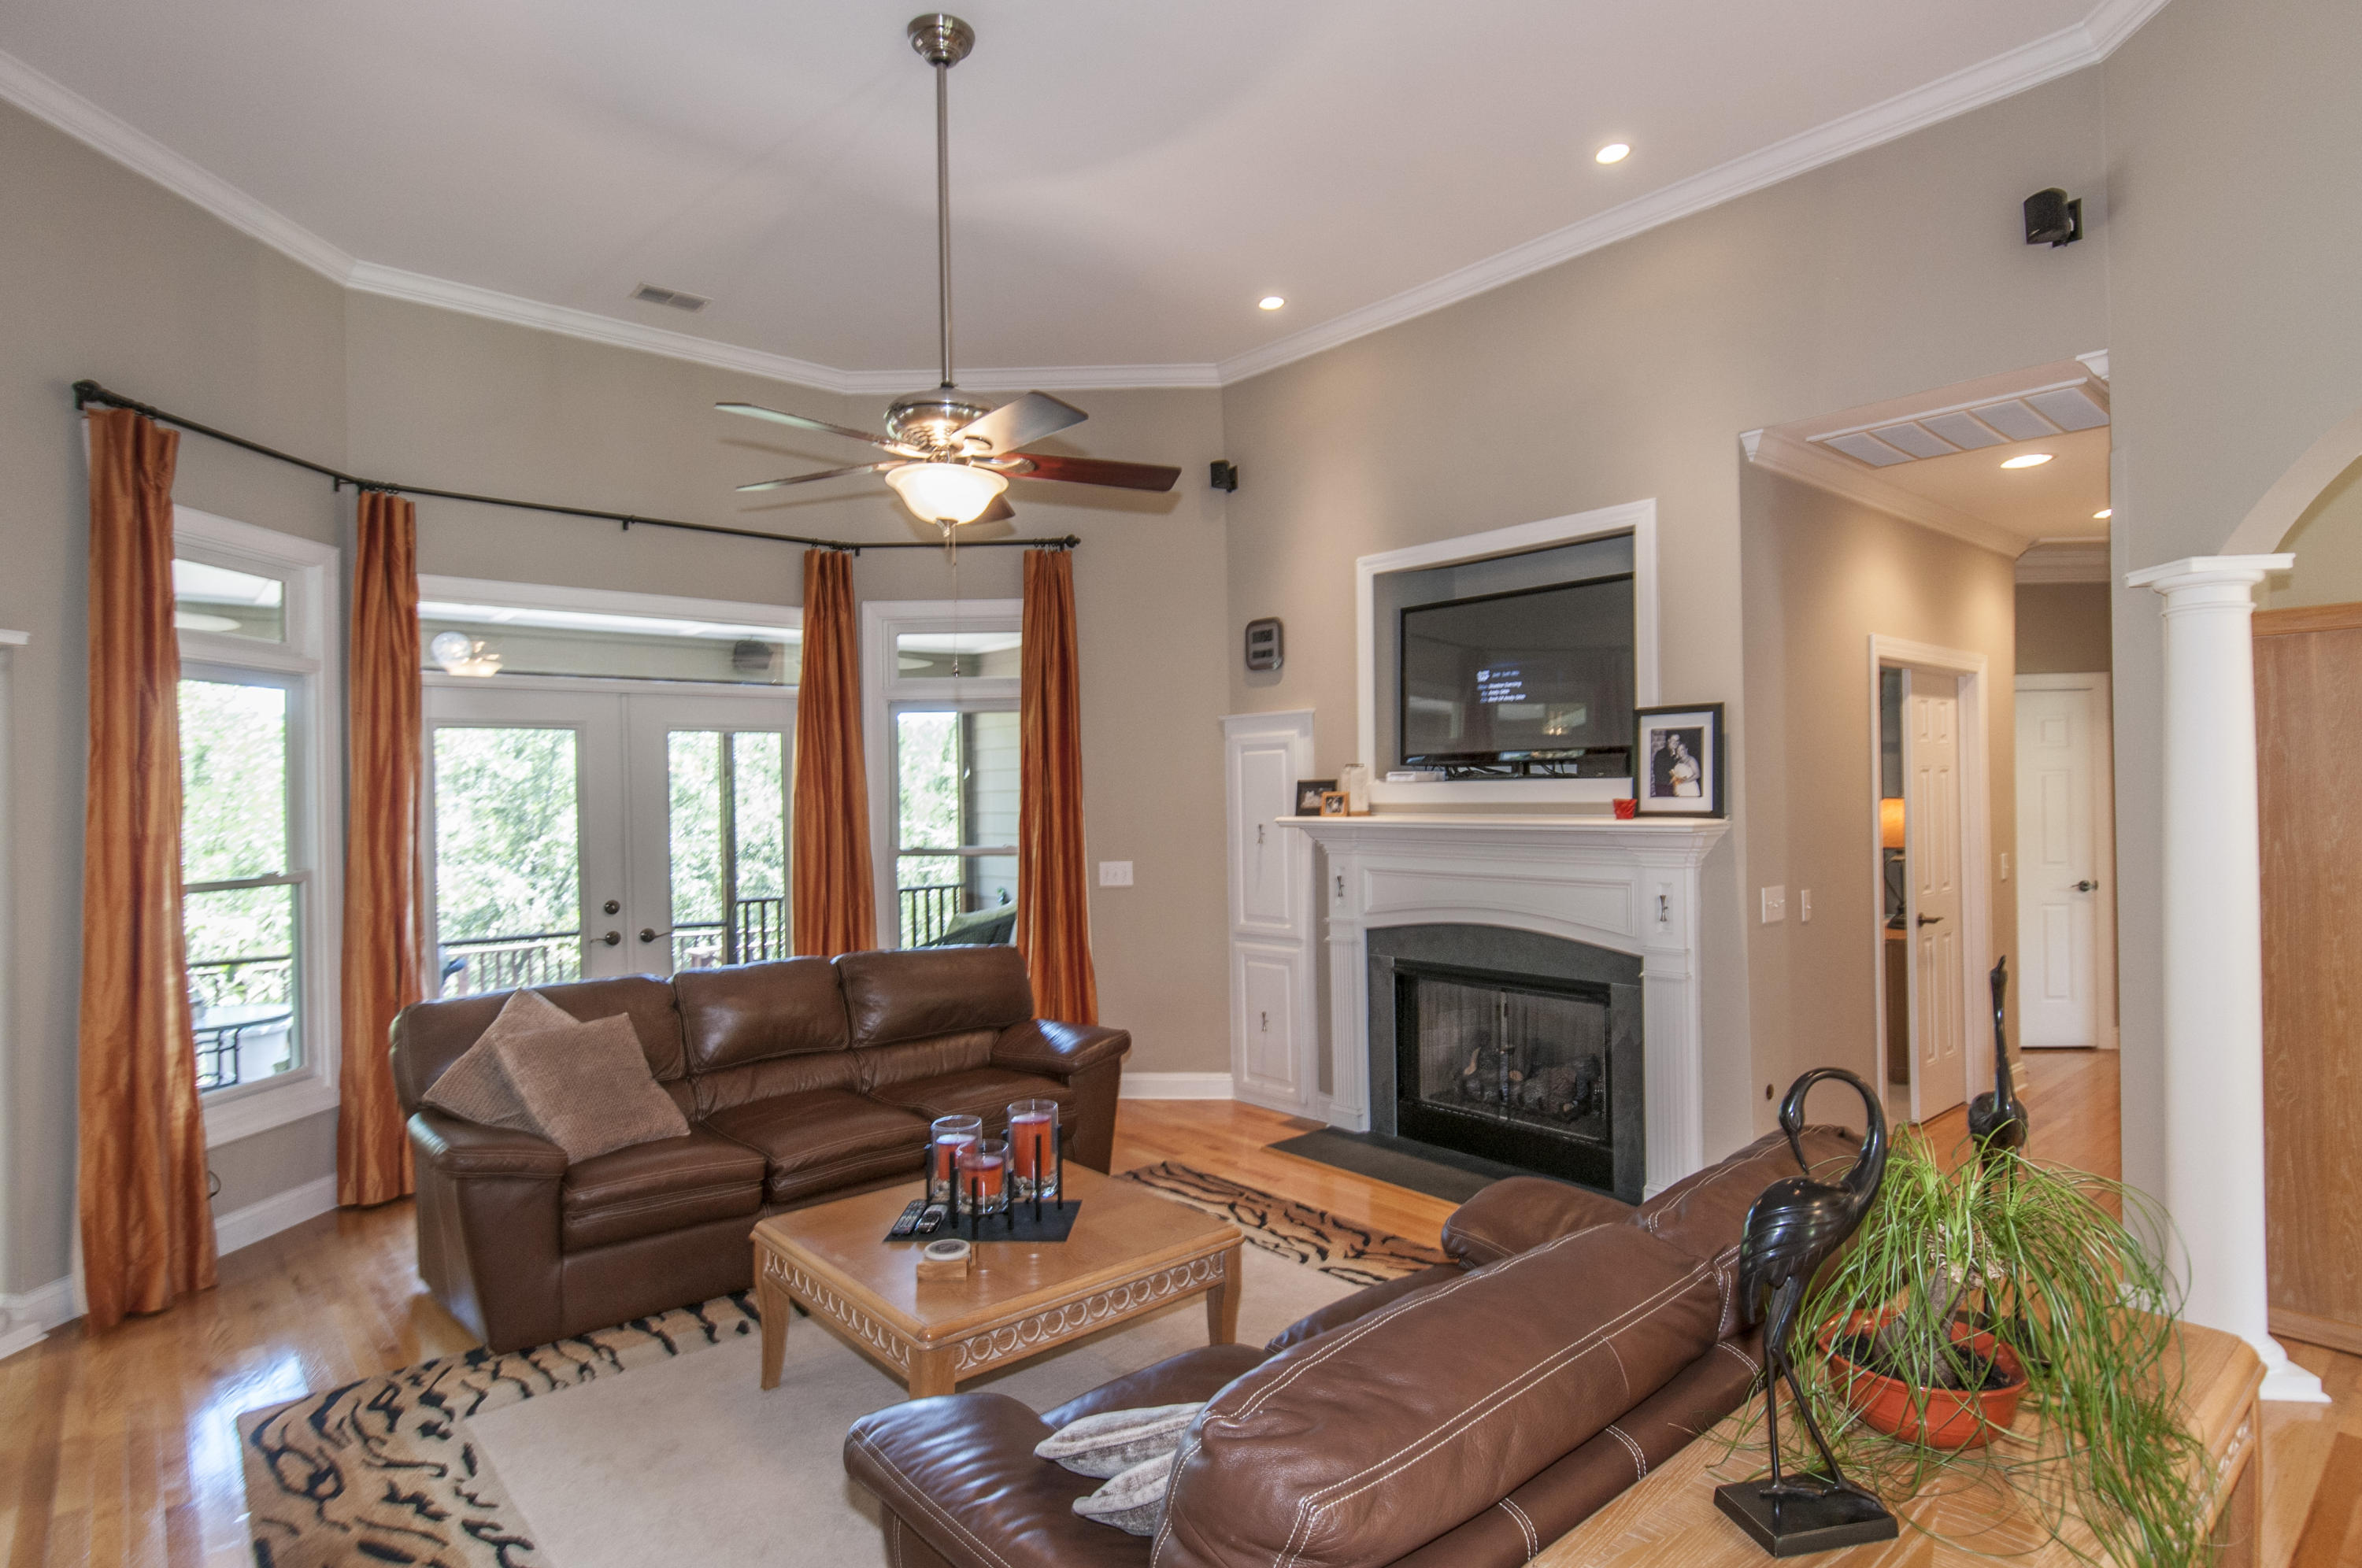 The Marshes at Rushland Landing Homes For Sale - 3022 Rushland Mews, Johns Island, SC - 42